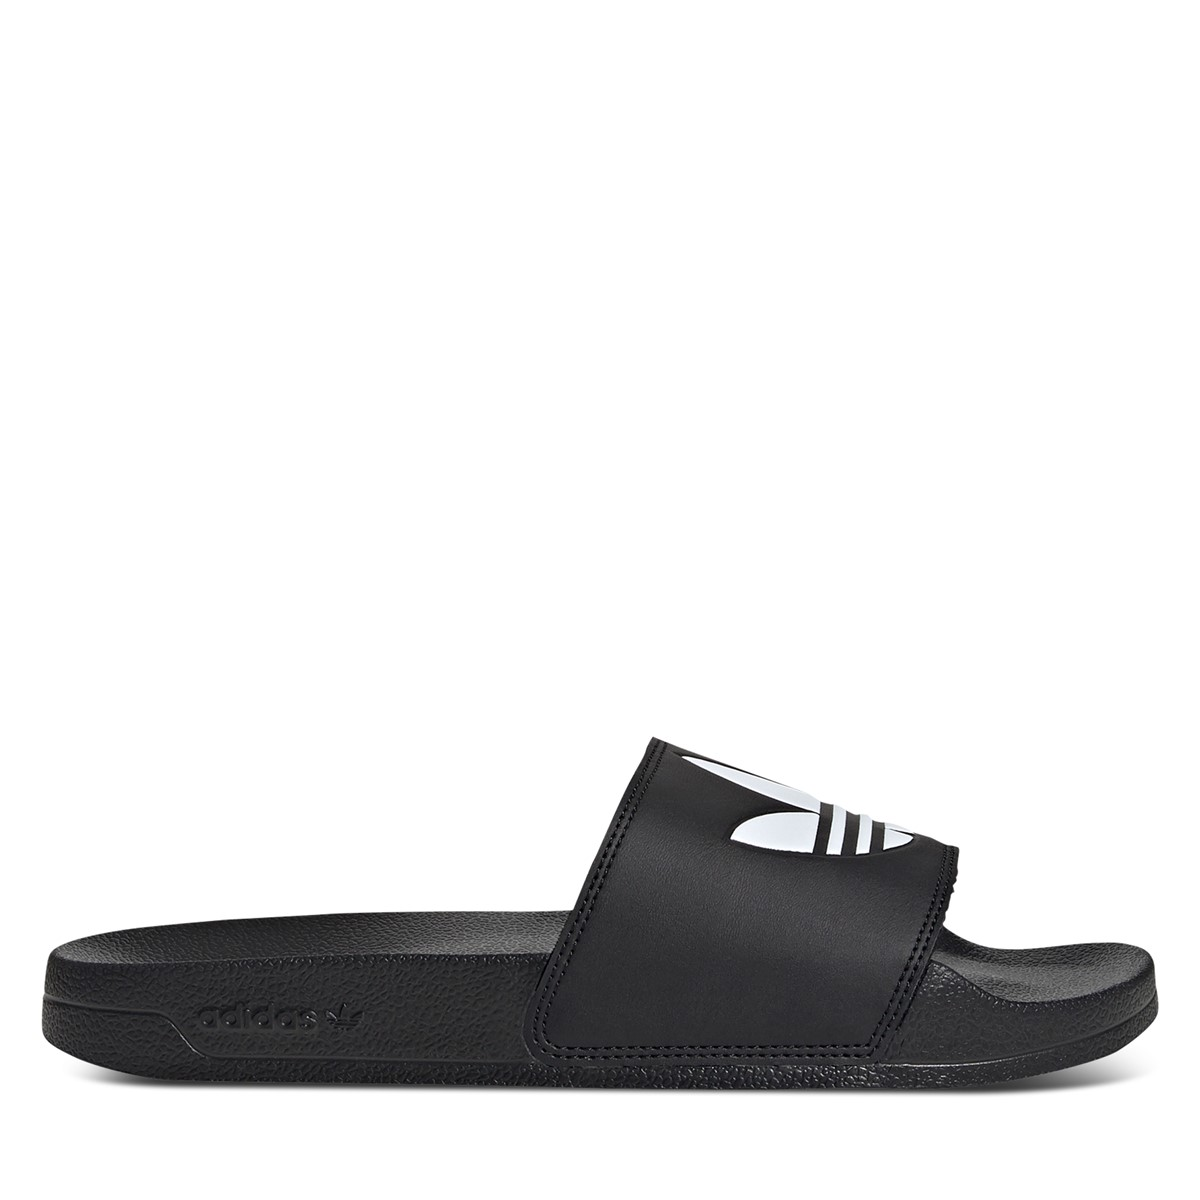 Men's Adilette Lite Slide Sandals in Black